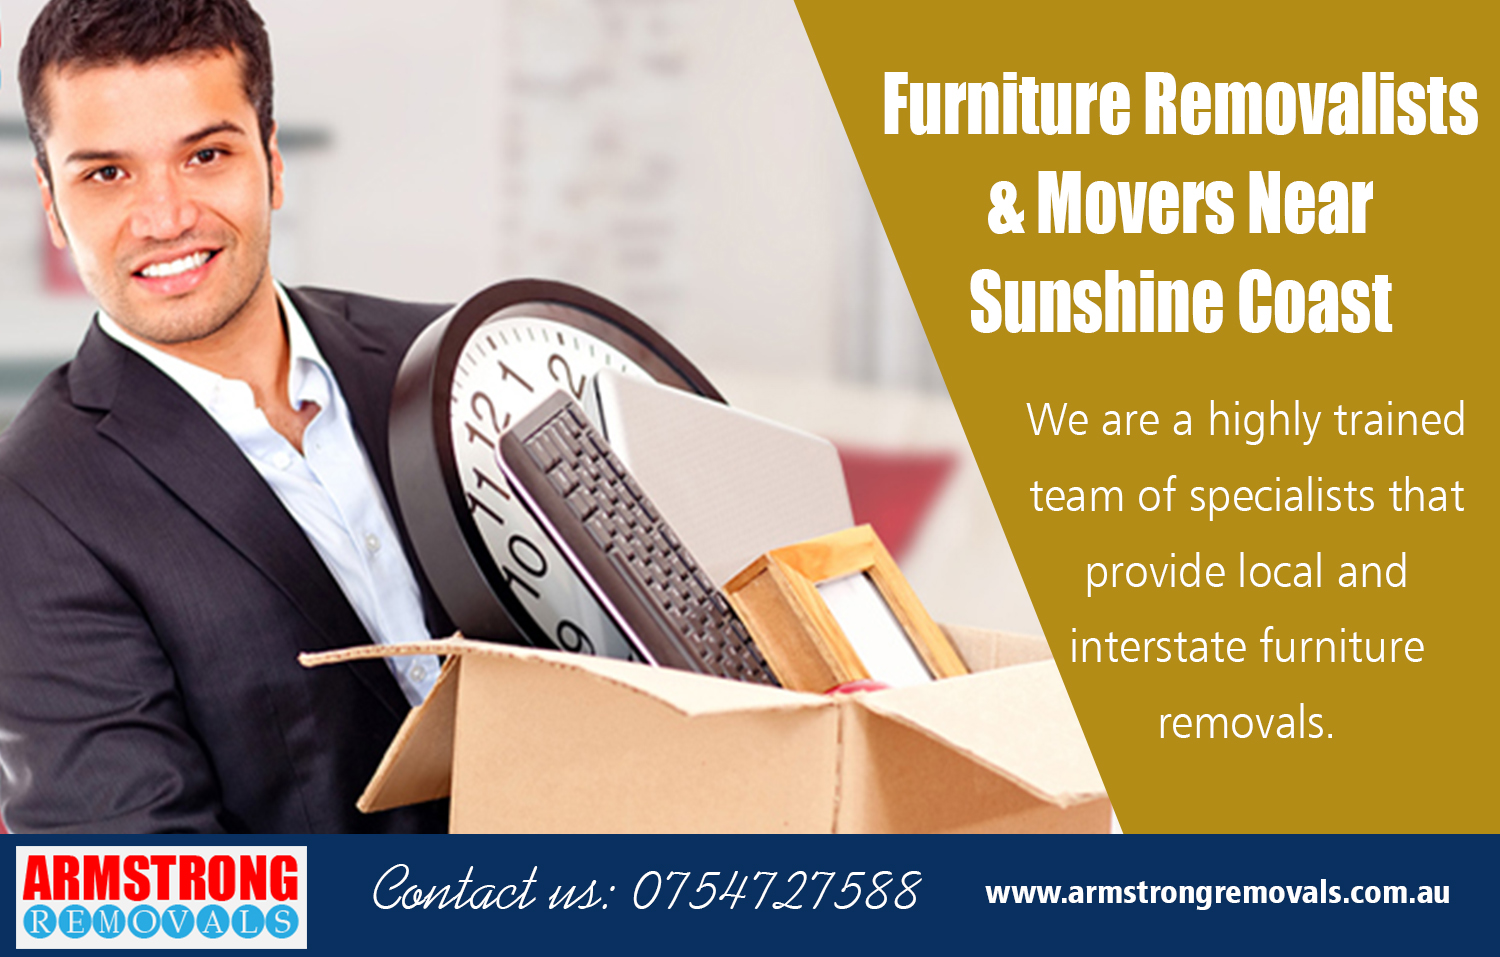 Furniture Removalists & Movers Near Sunshine Coast